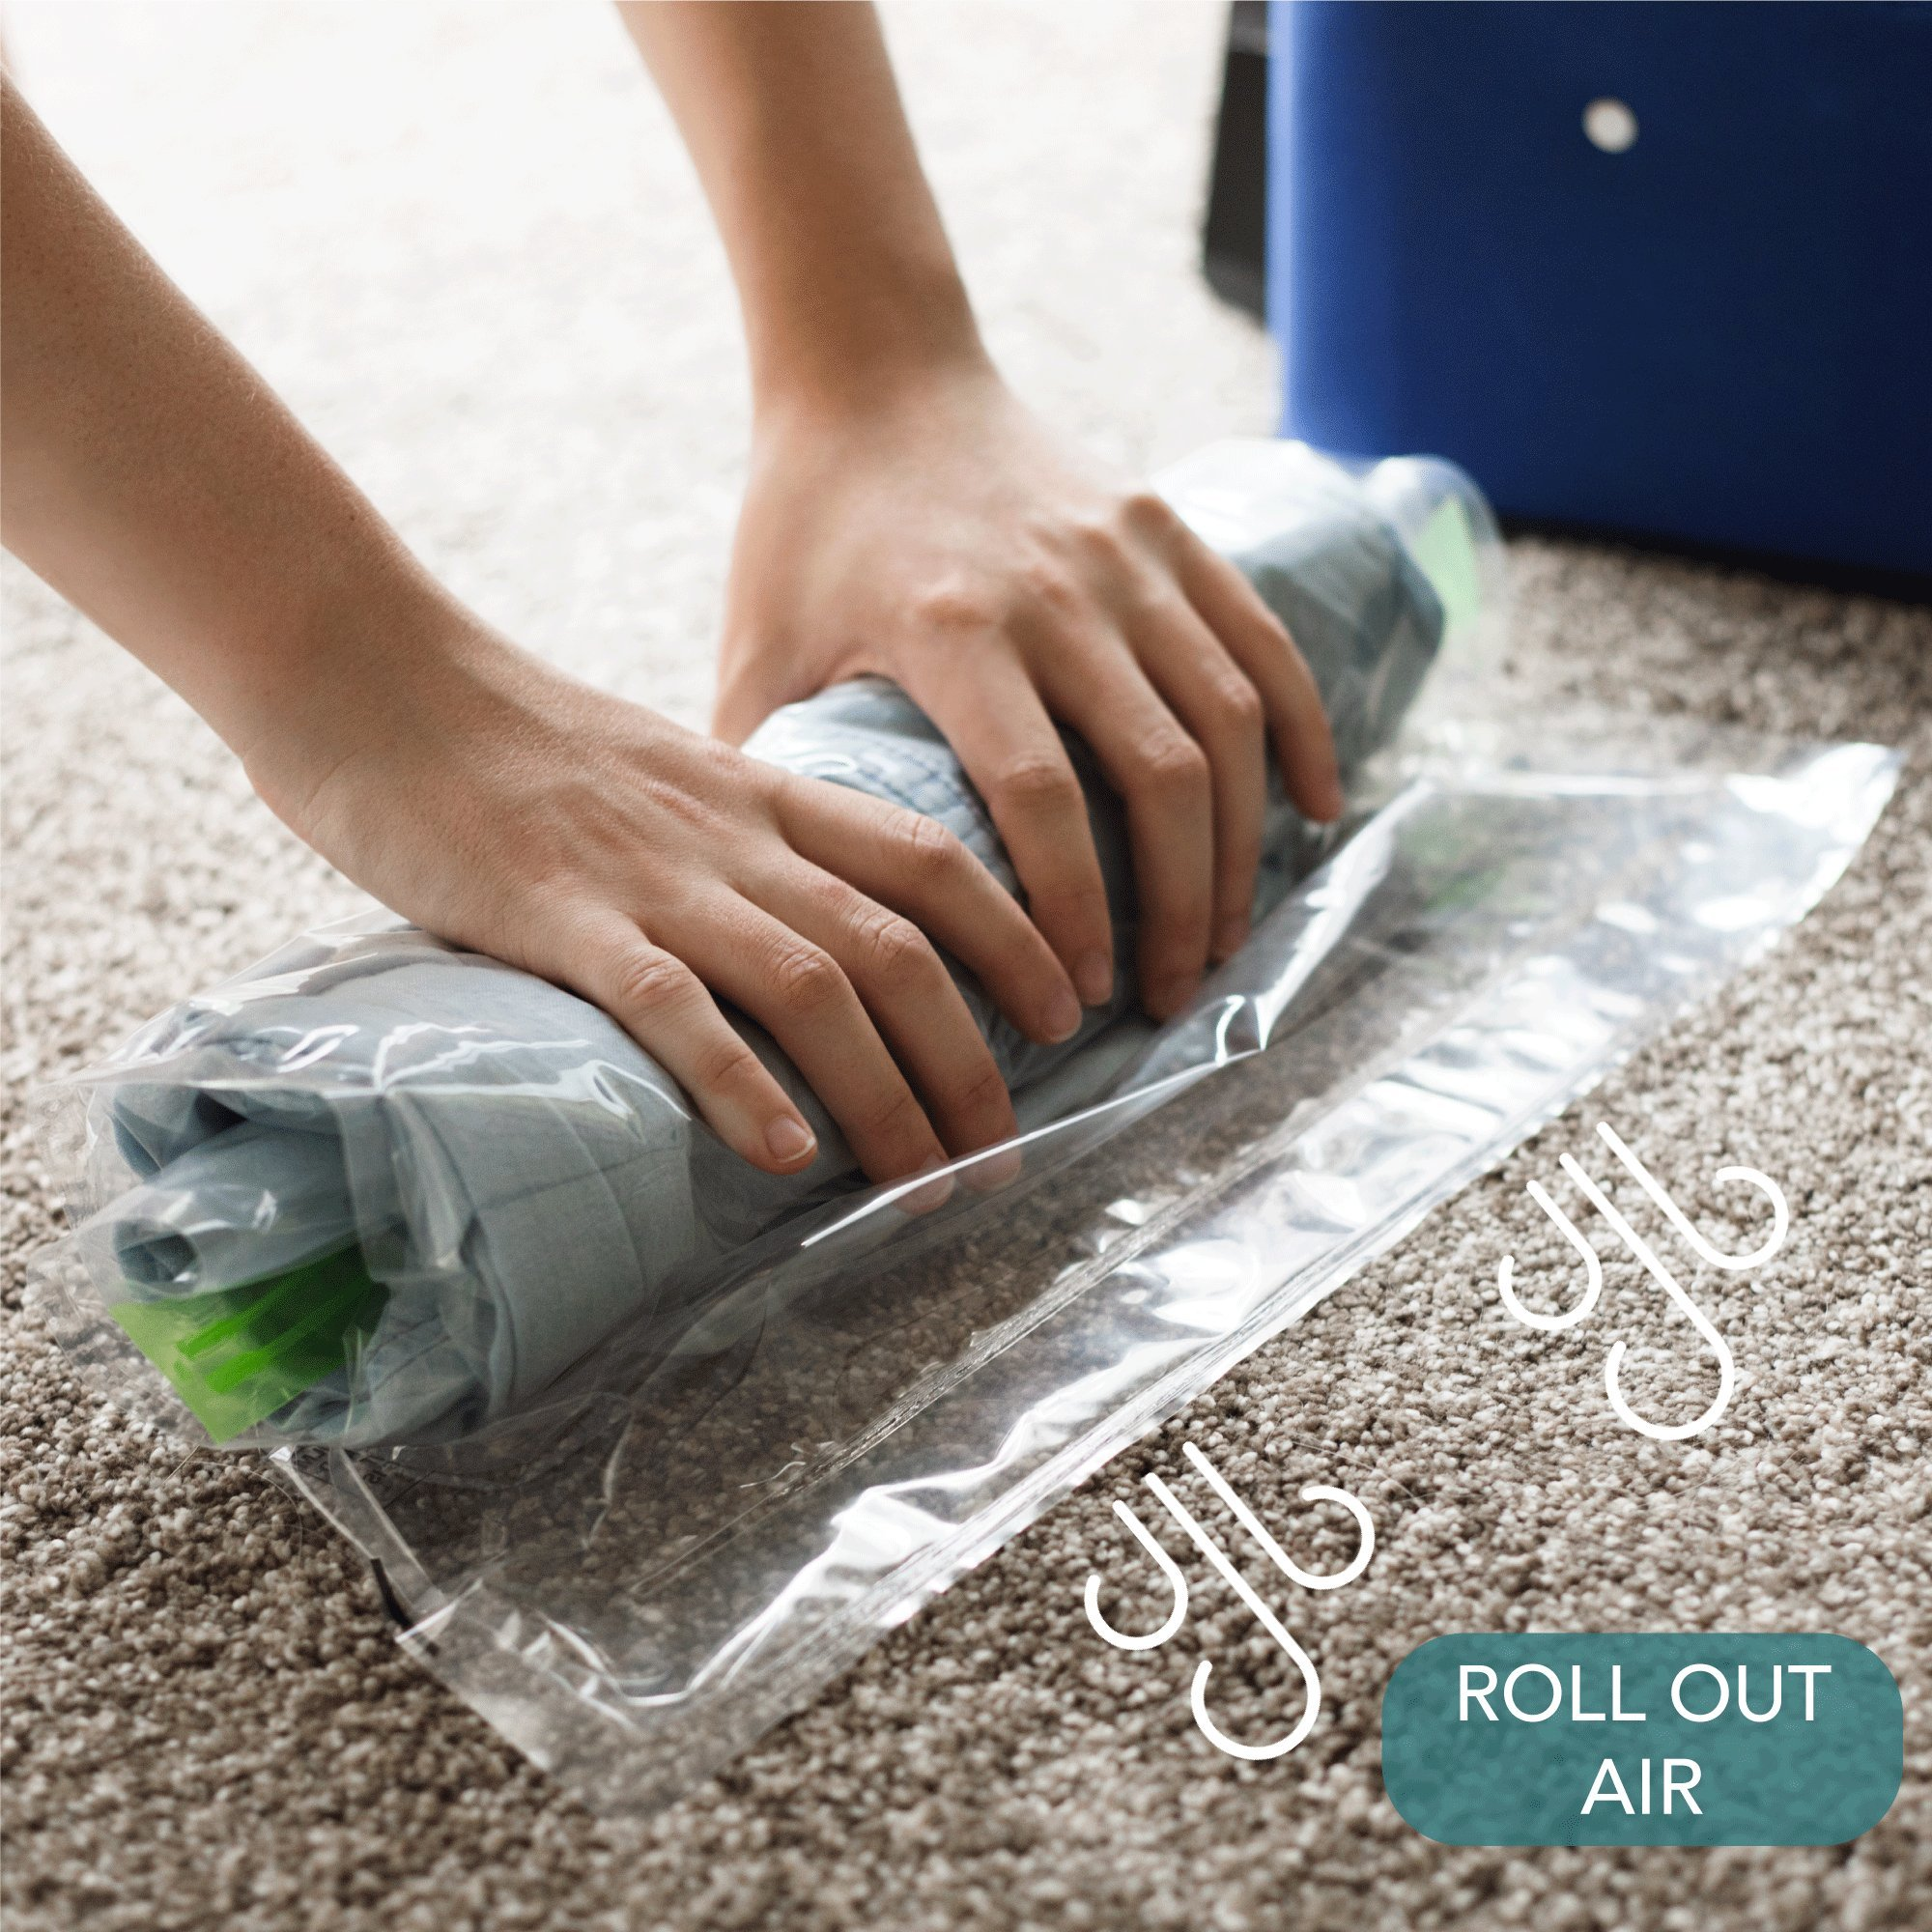 Acrodo Space Saver Packing Bags for Travel - 10-pack Rolling Compression Bags for Clothing by Acrodo (Image #4)